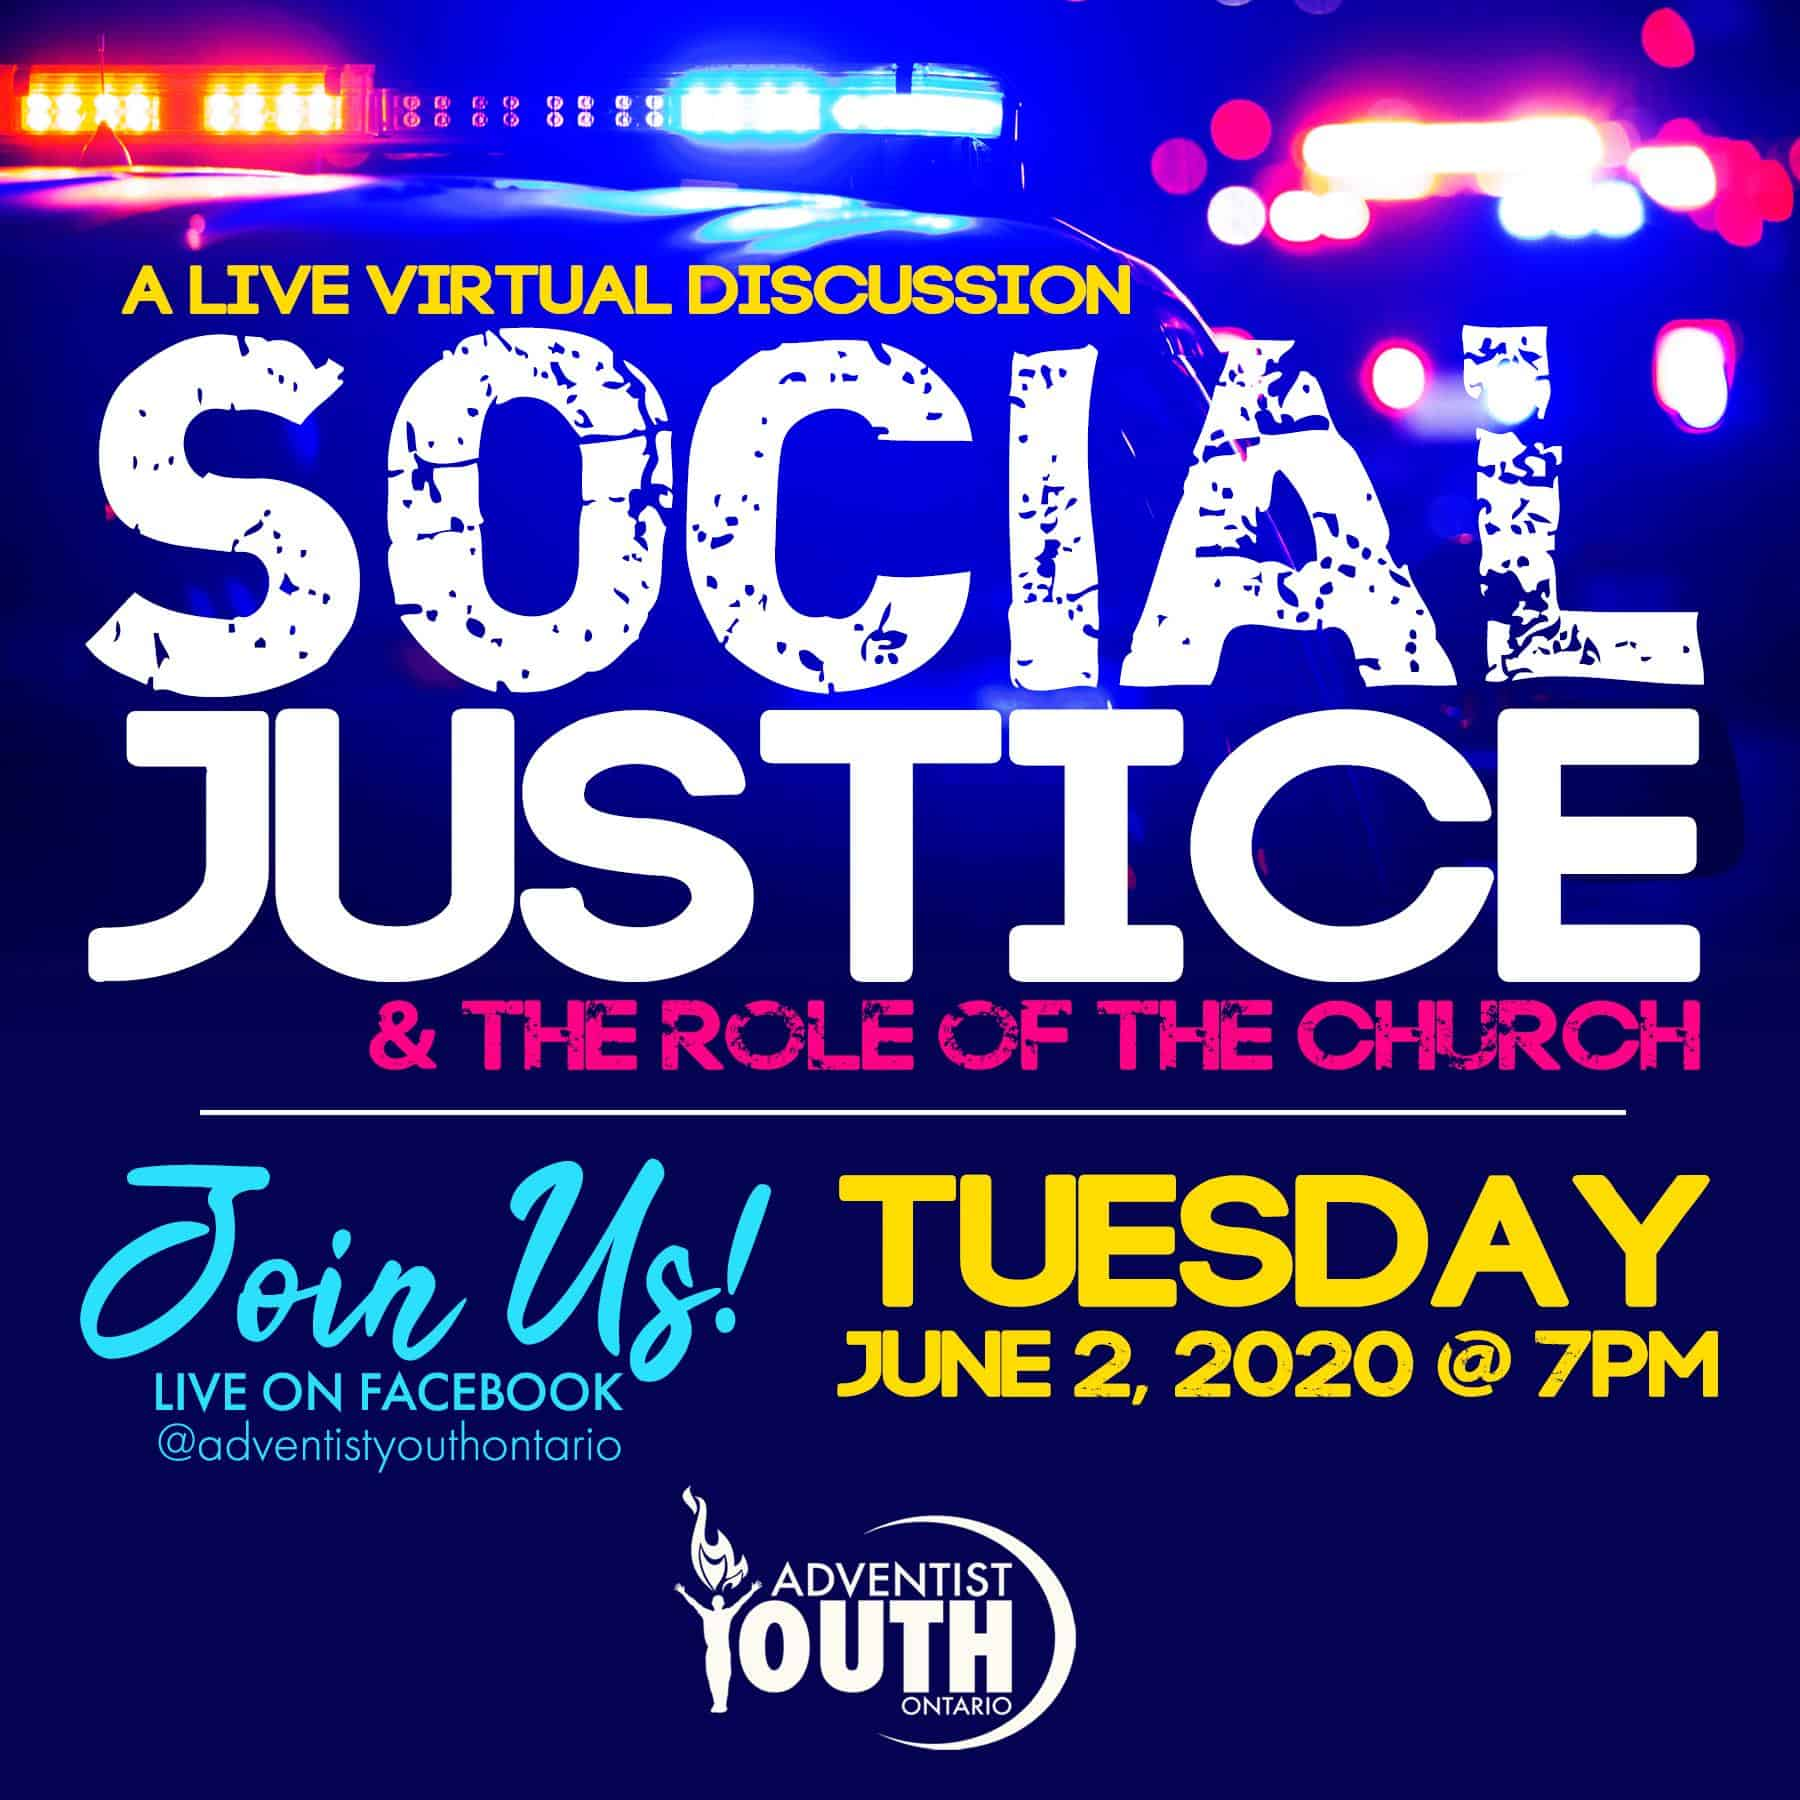 Pastor for Social Justice and the role of the church